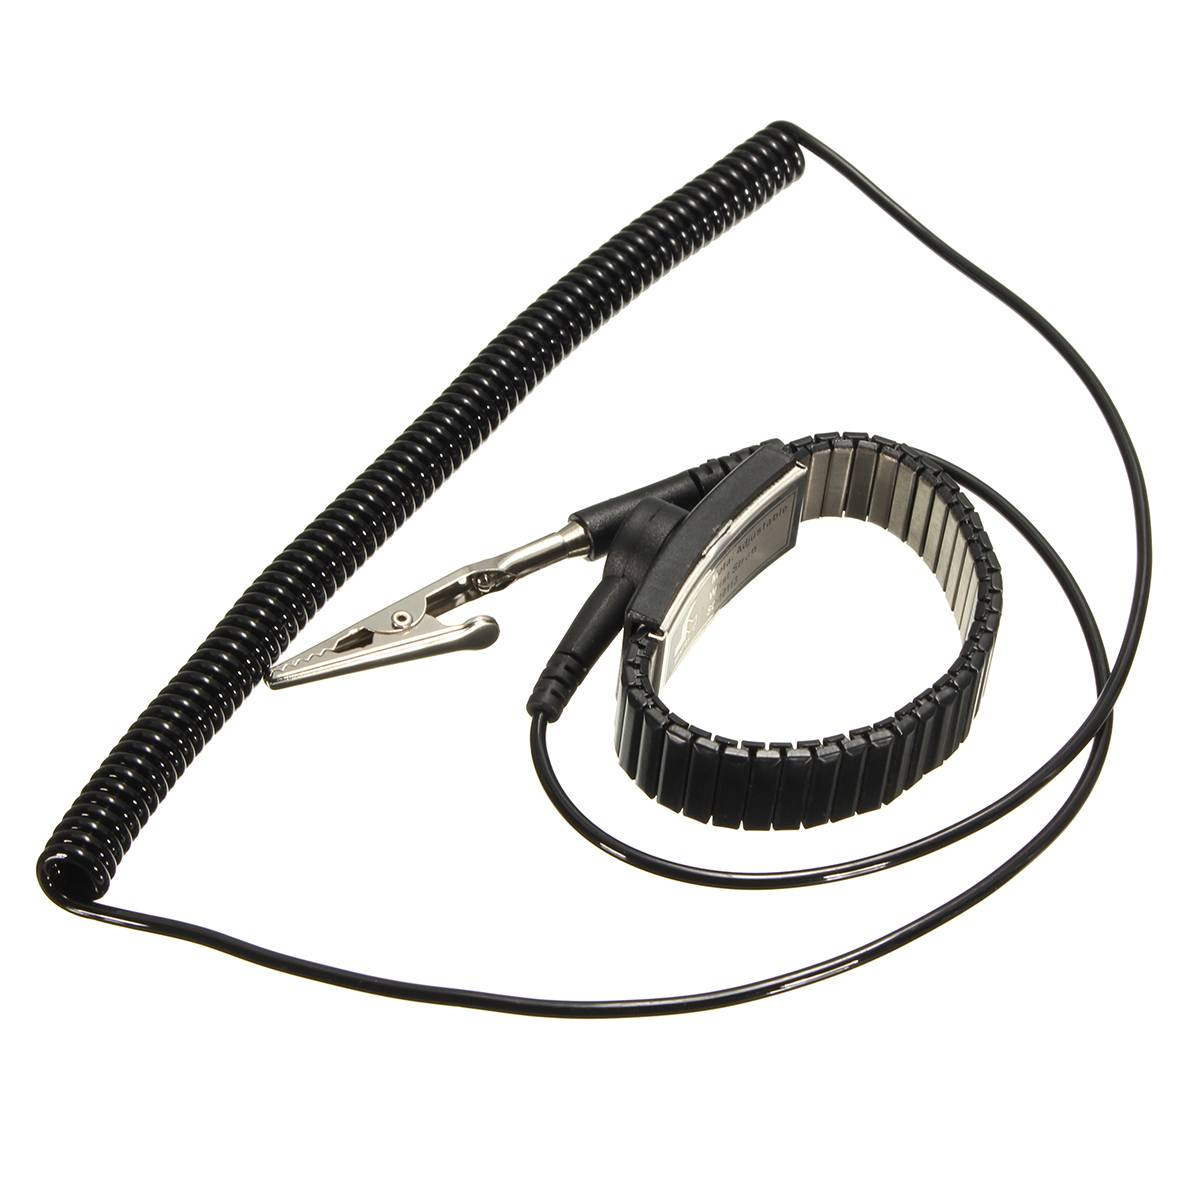 Intellective New Anti Static Esd Adjustable Wrist Strap Discharge Belt Ground Metal Bracelet Pesonal Safety Protector